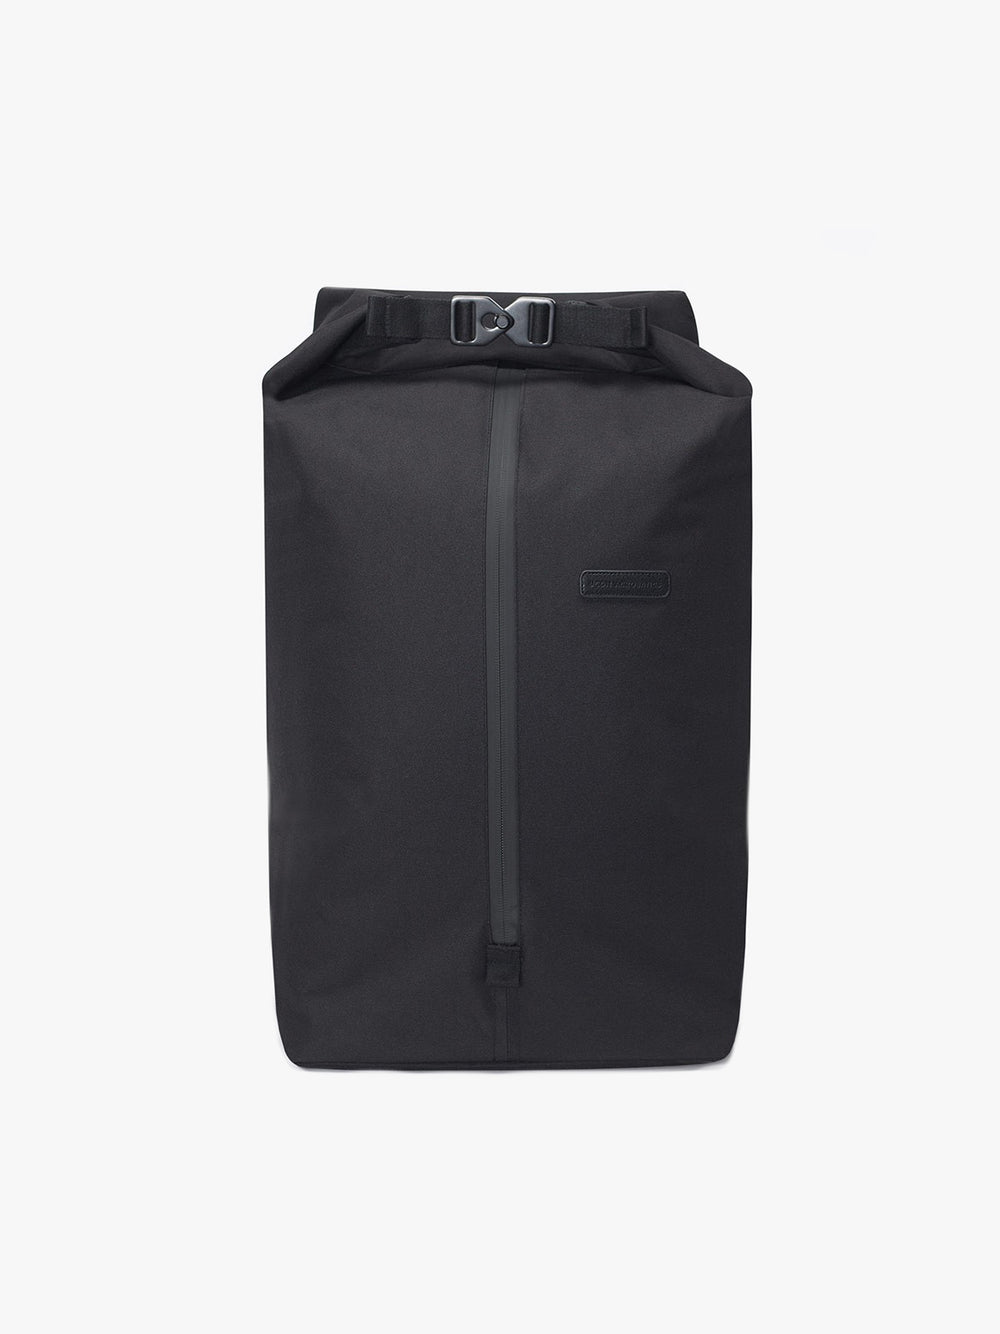 Frederik urban laptop backpack by Ucon Acrobatics